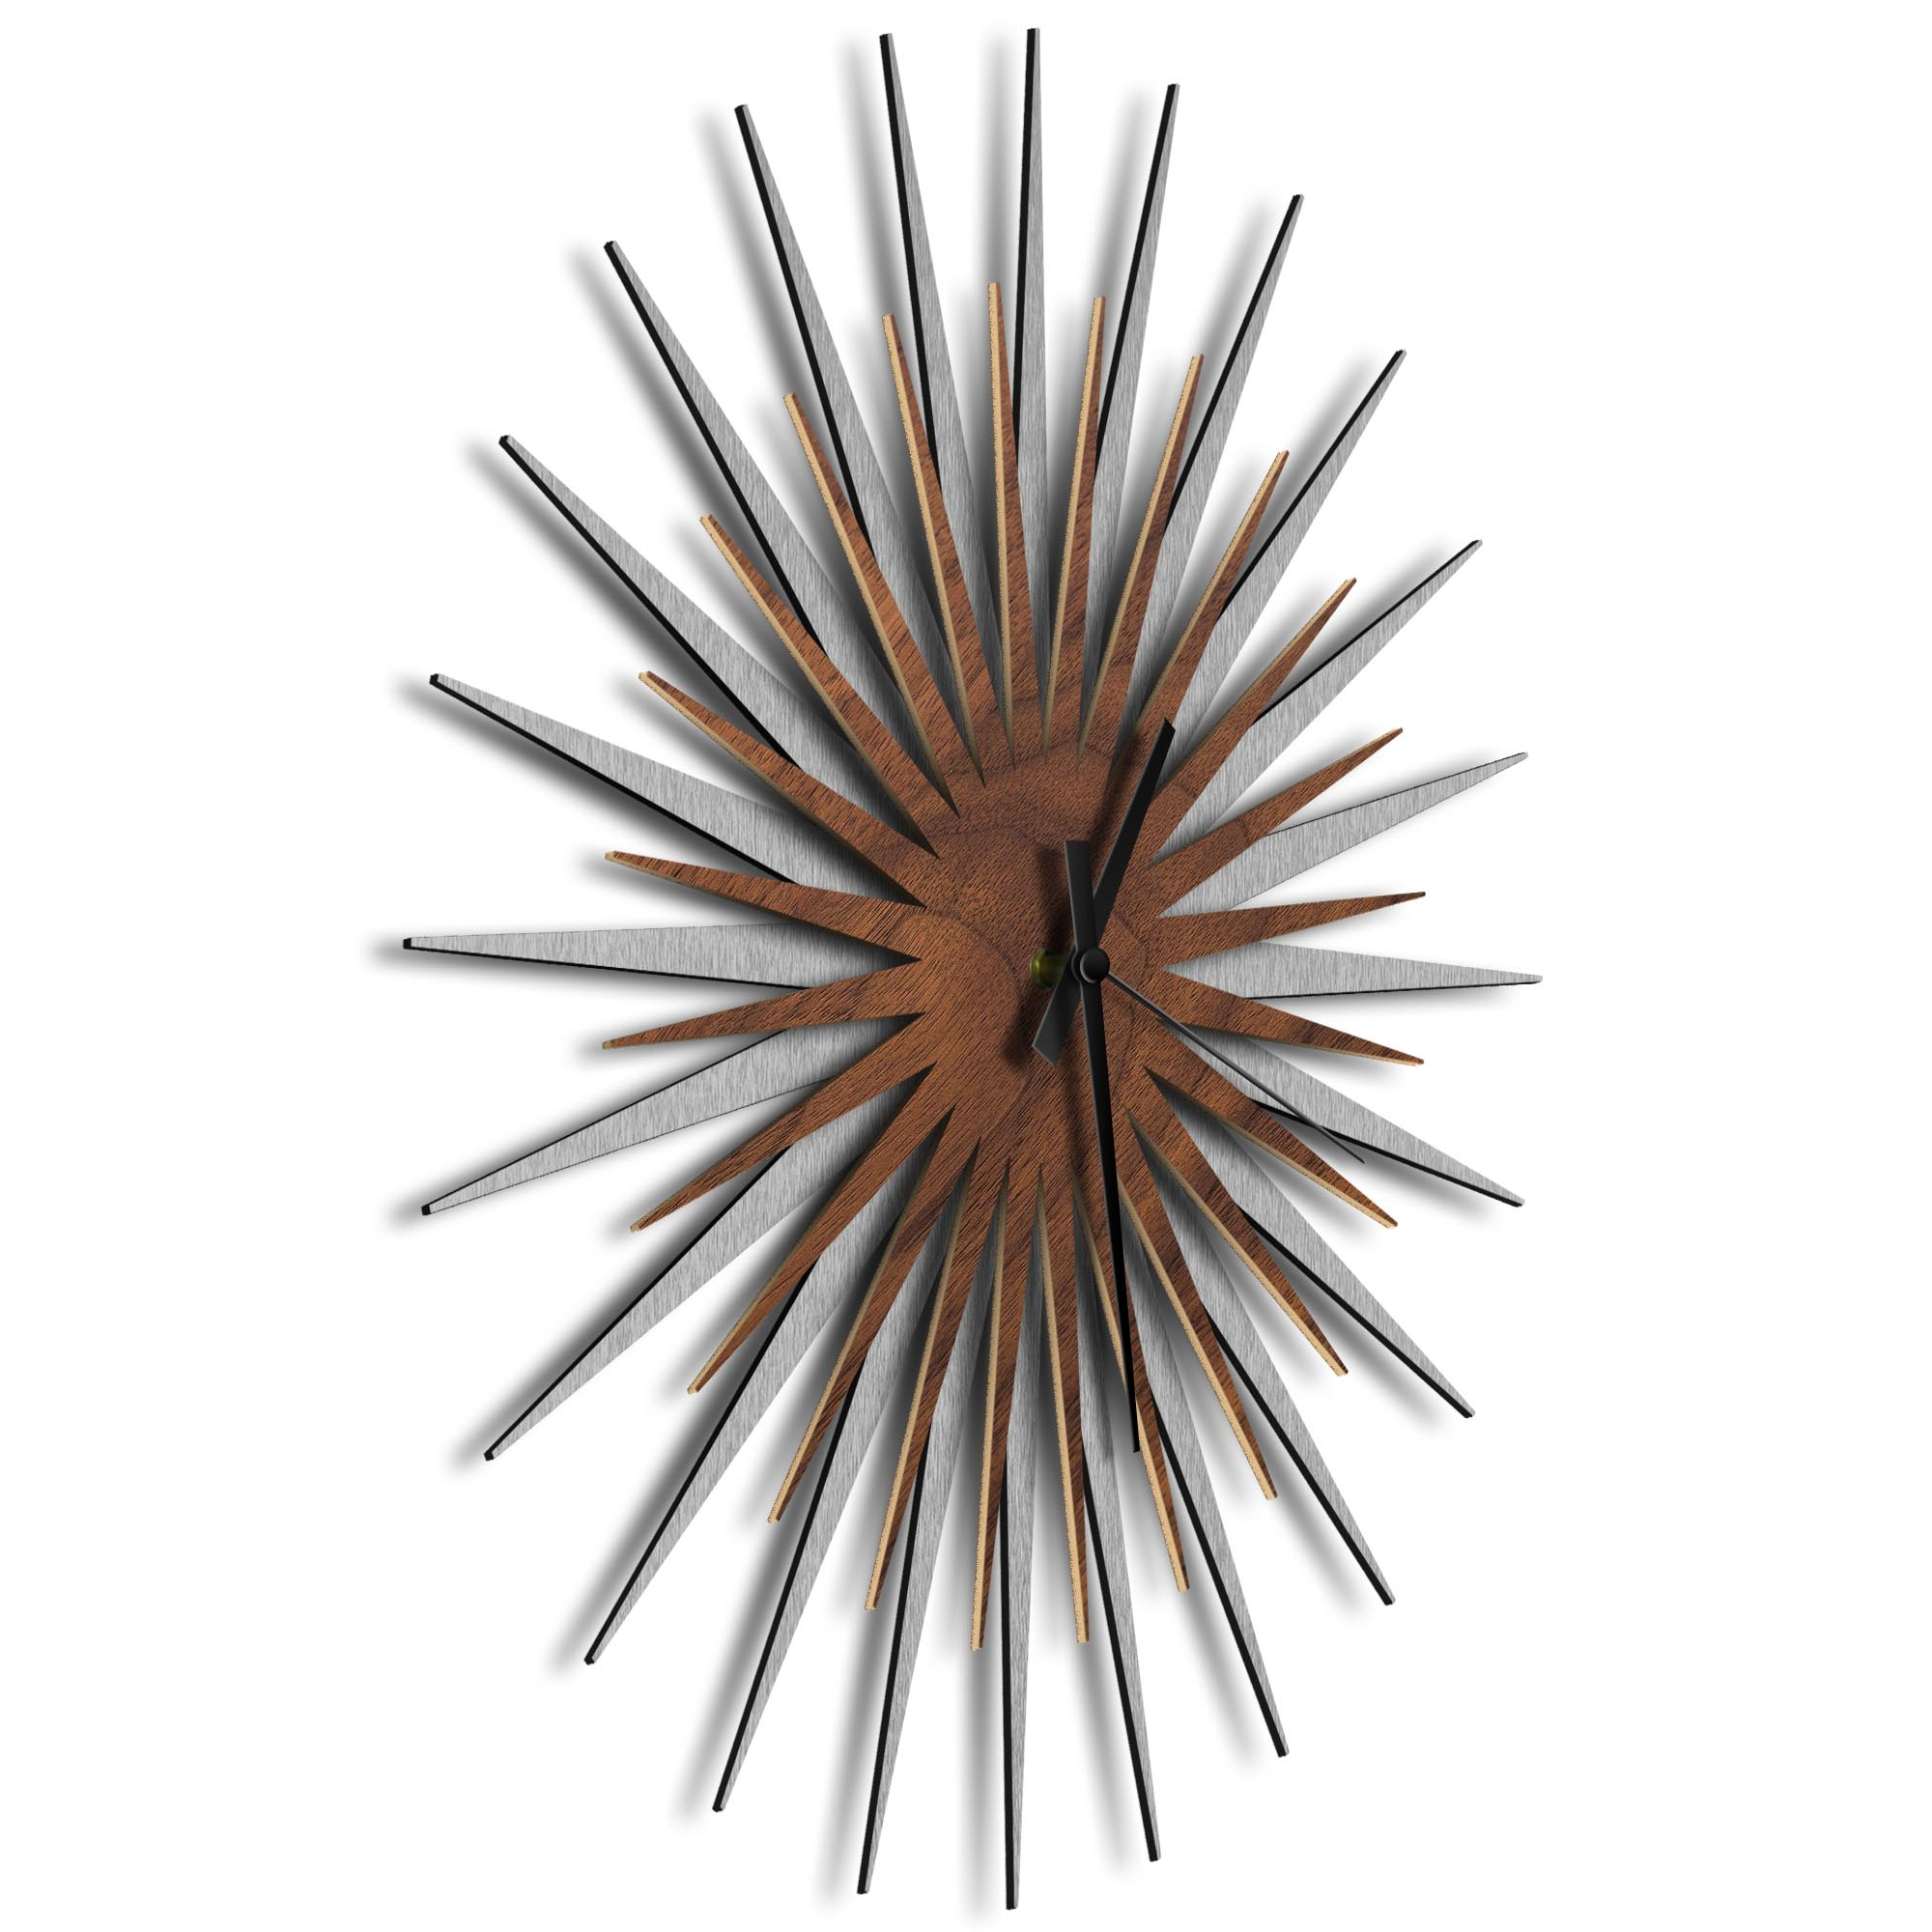 Atomic Era Clock Silver Walnut Black by Adam Schwoeppe - Mid-Century Modern Clock on Brushed Silver Polymetal - Image 2